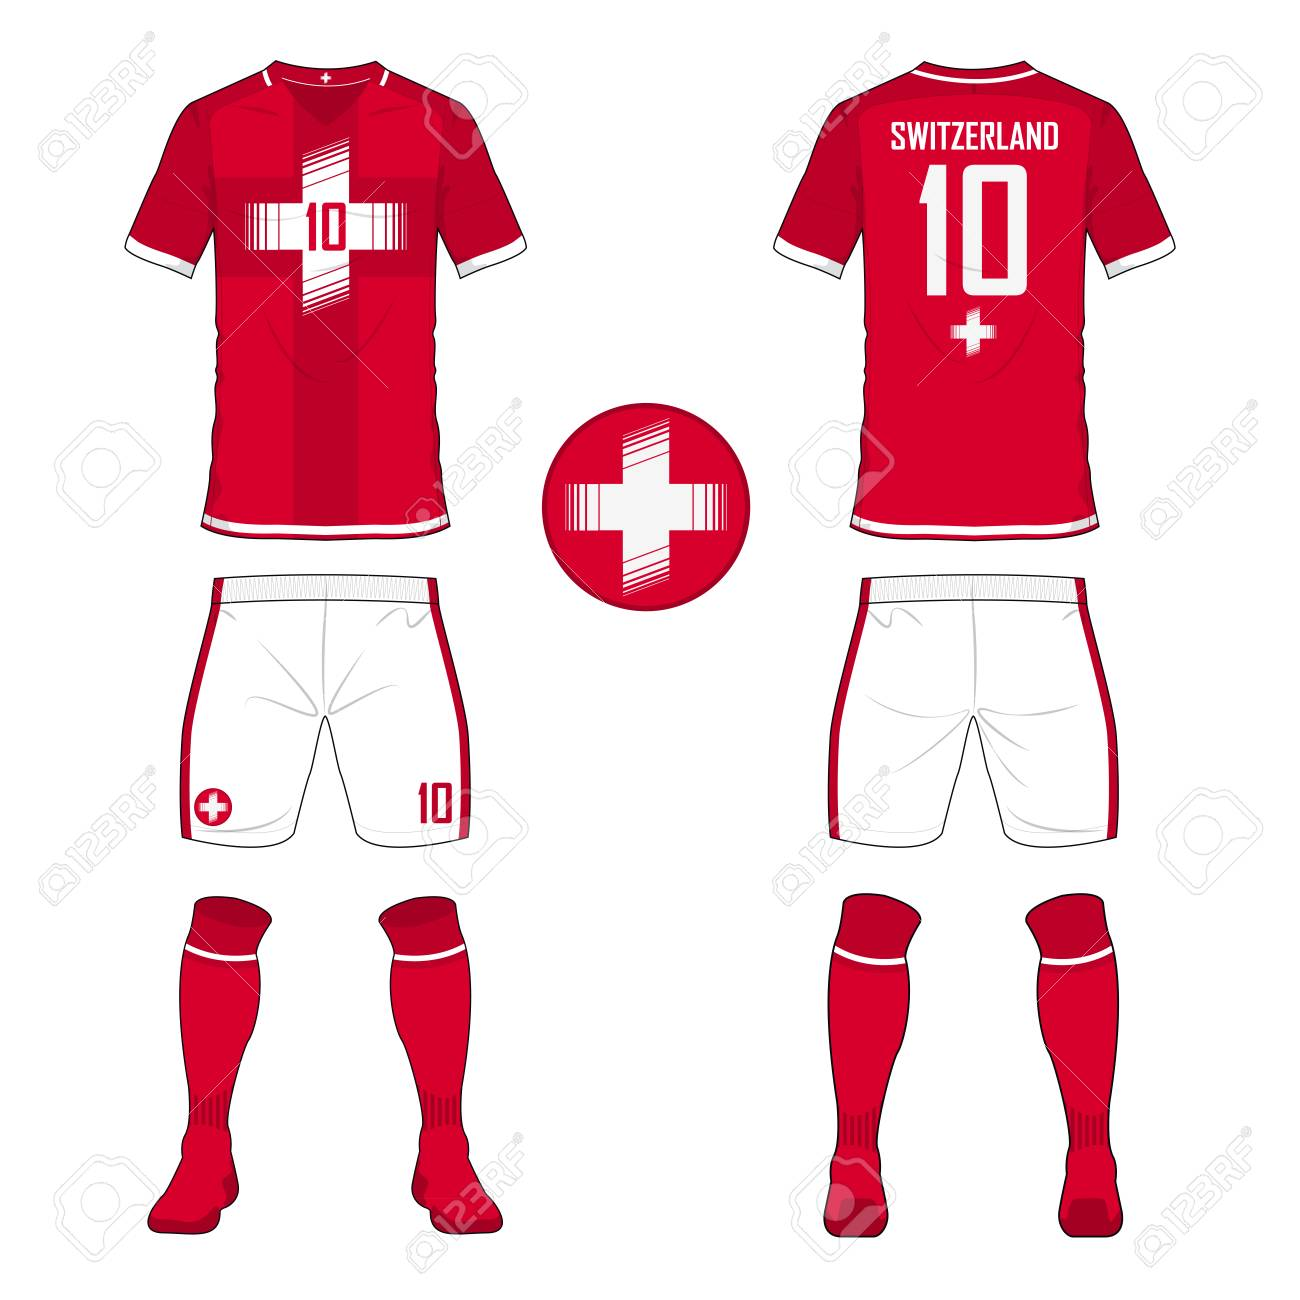 db9e341b0 Vector Illustration. Set of soccer jersey or football kit template for  Switzerland national football team. Front and